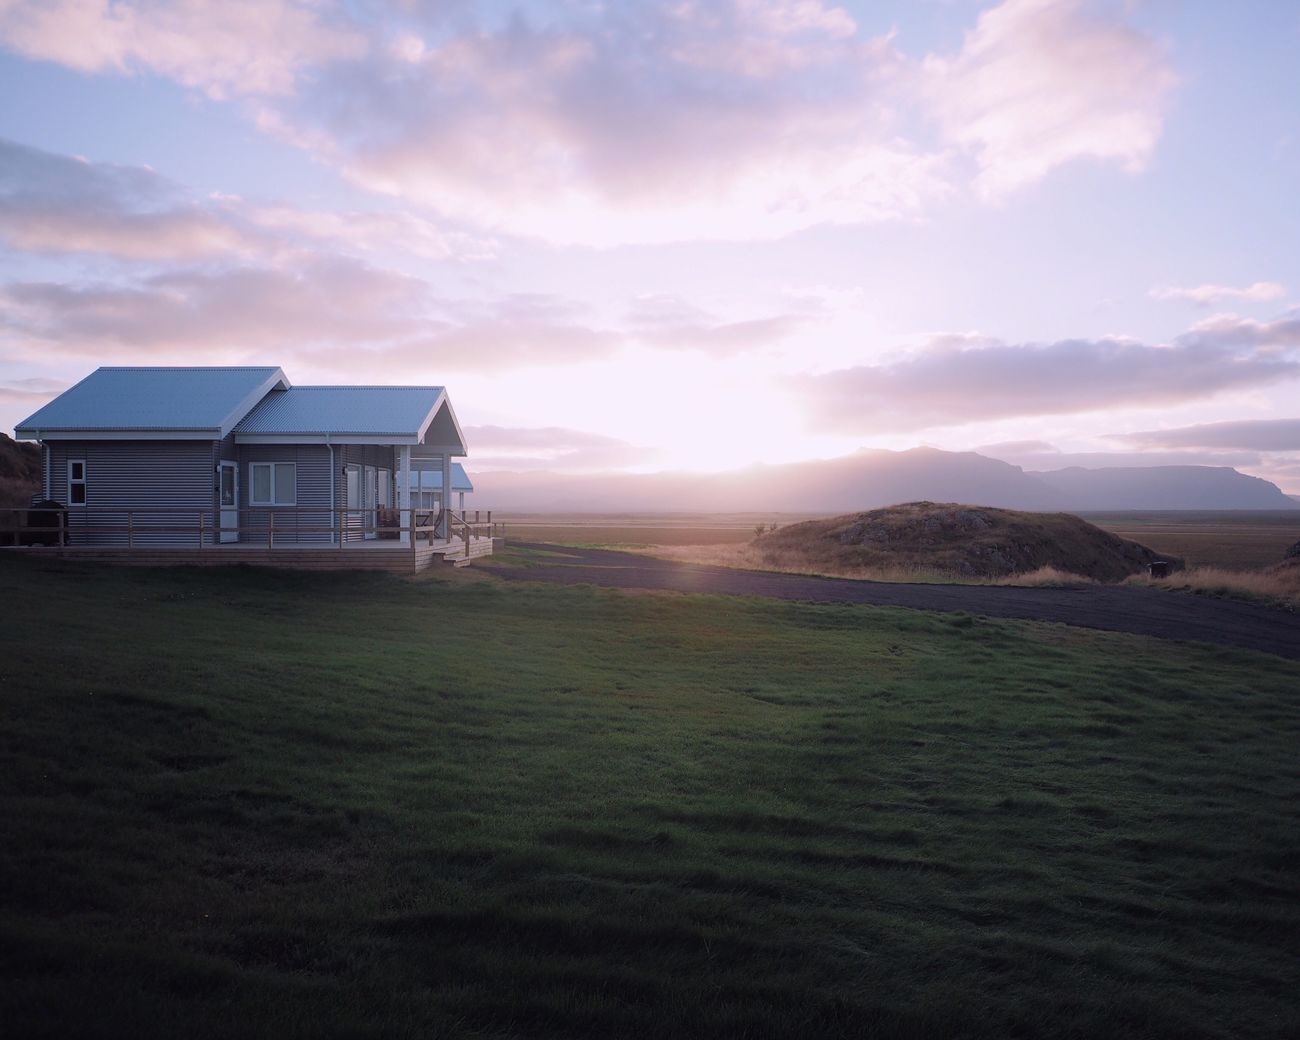 Sky Beauty In Nature Built Structure Tranquility Nature Landscape Architecture Tranquil Scene Cloud - Sky Building Exterior Outdoors Scenics Sunrise in Iceland